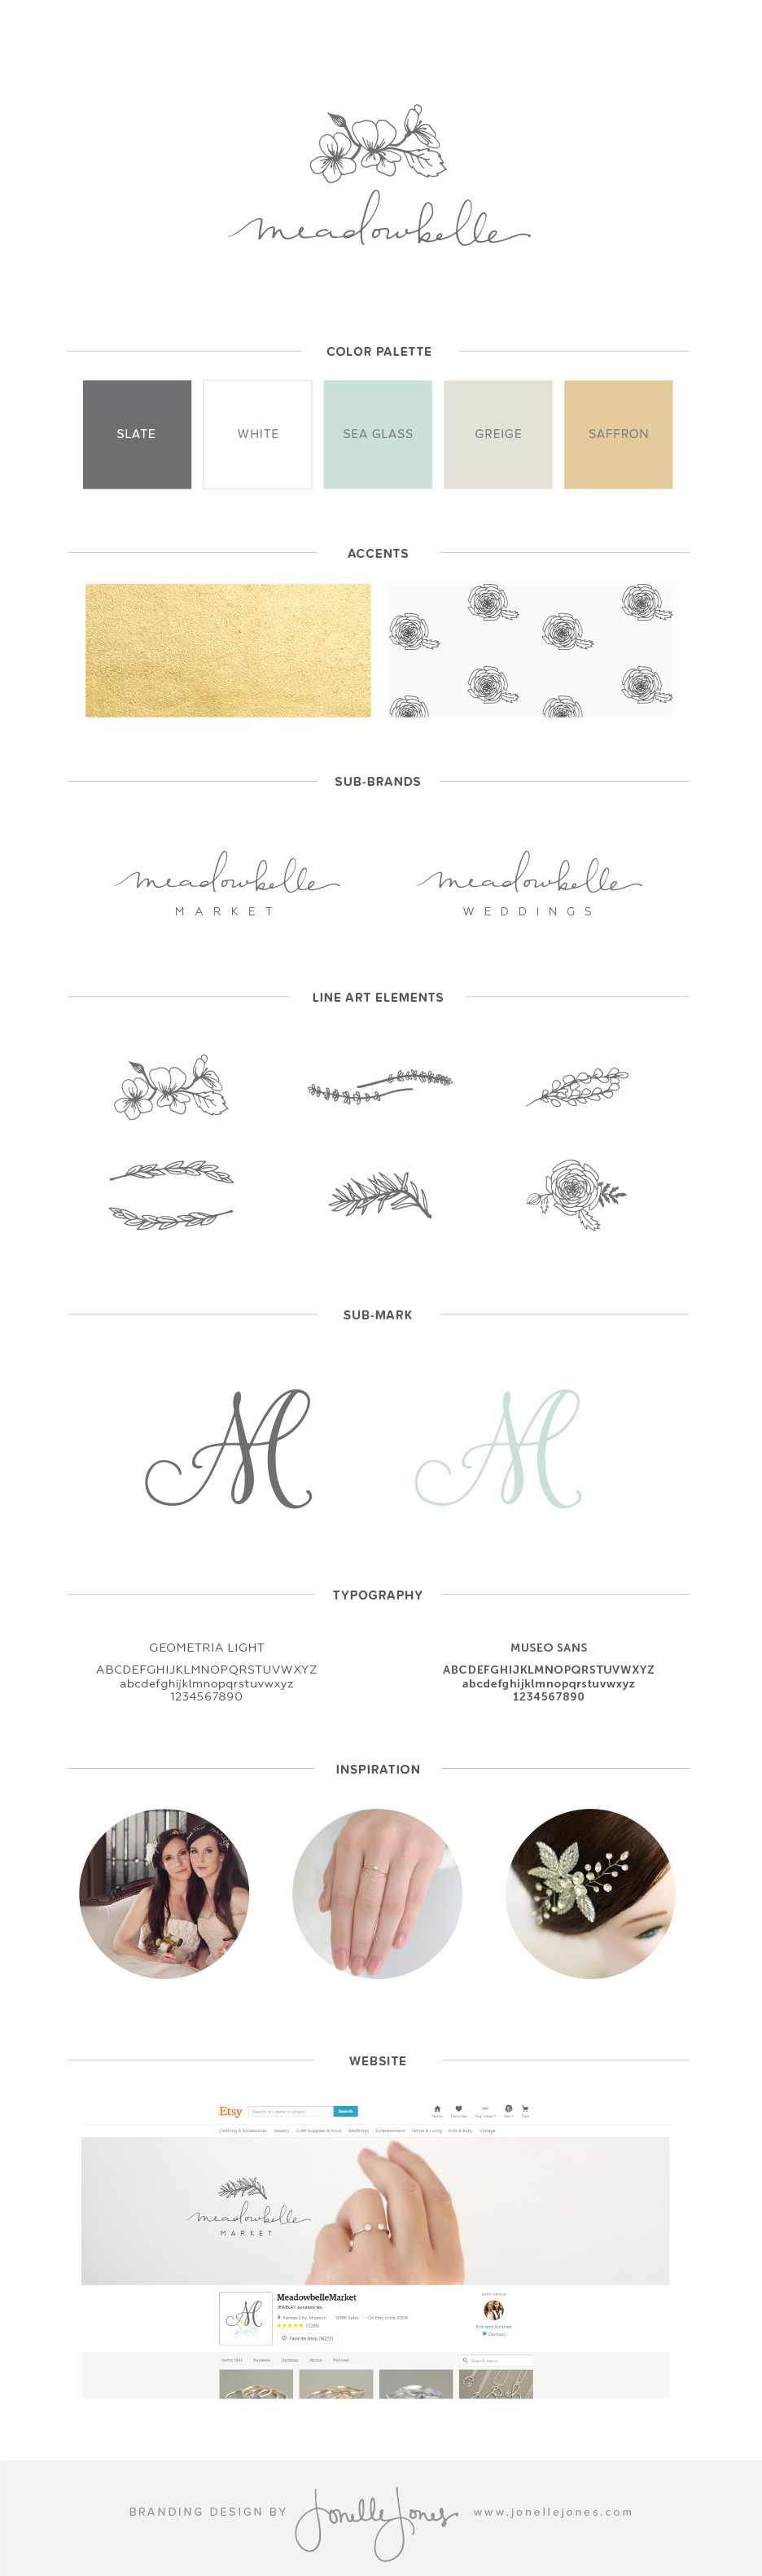 meadowbelle branding by jonelle jones creative